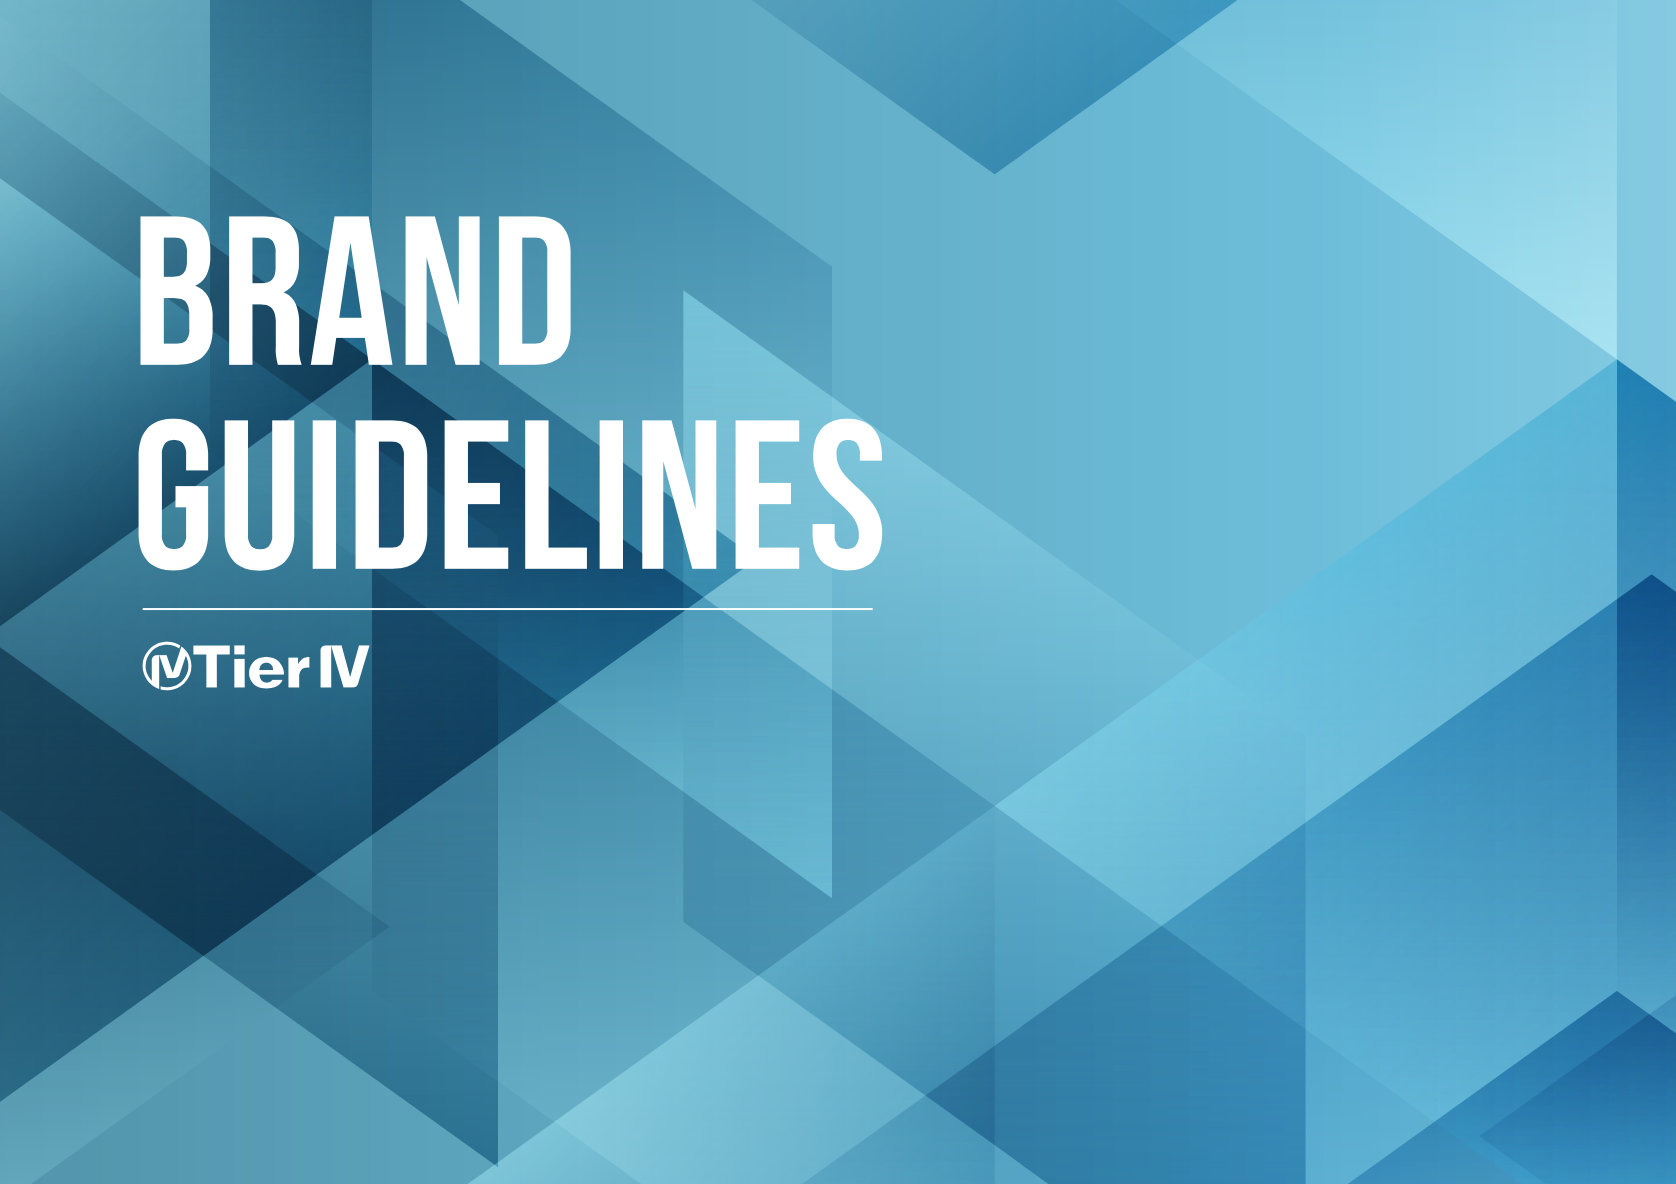 Brand Guidelines image